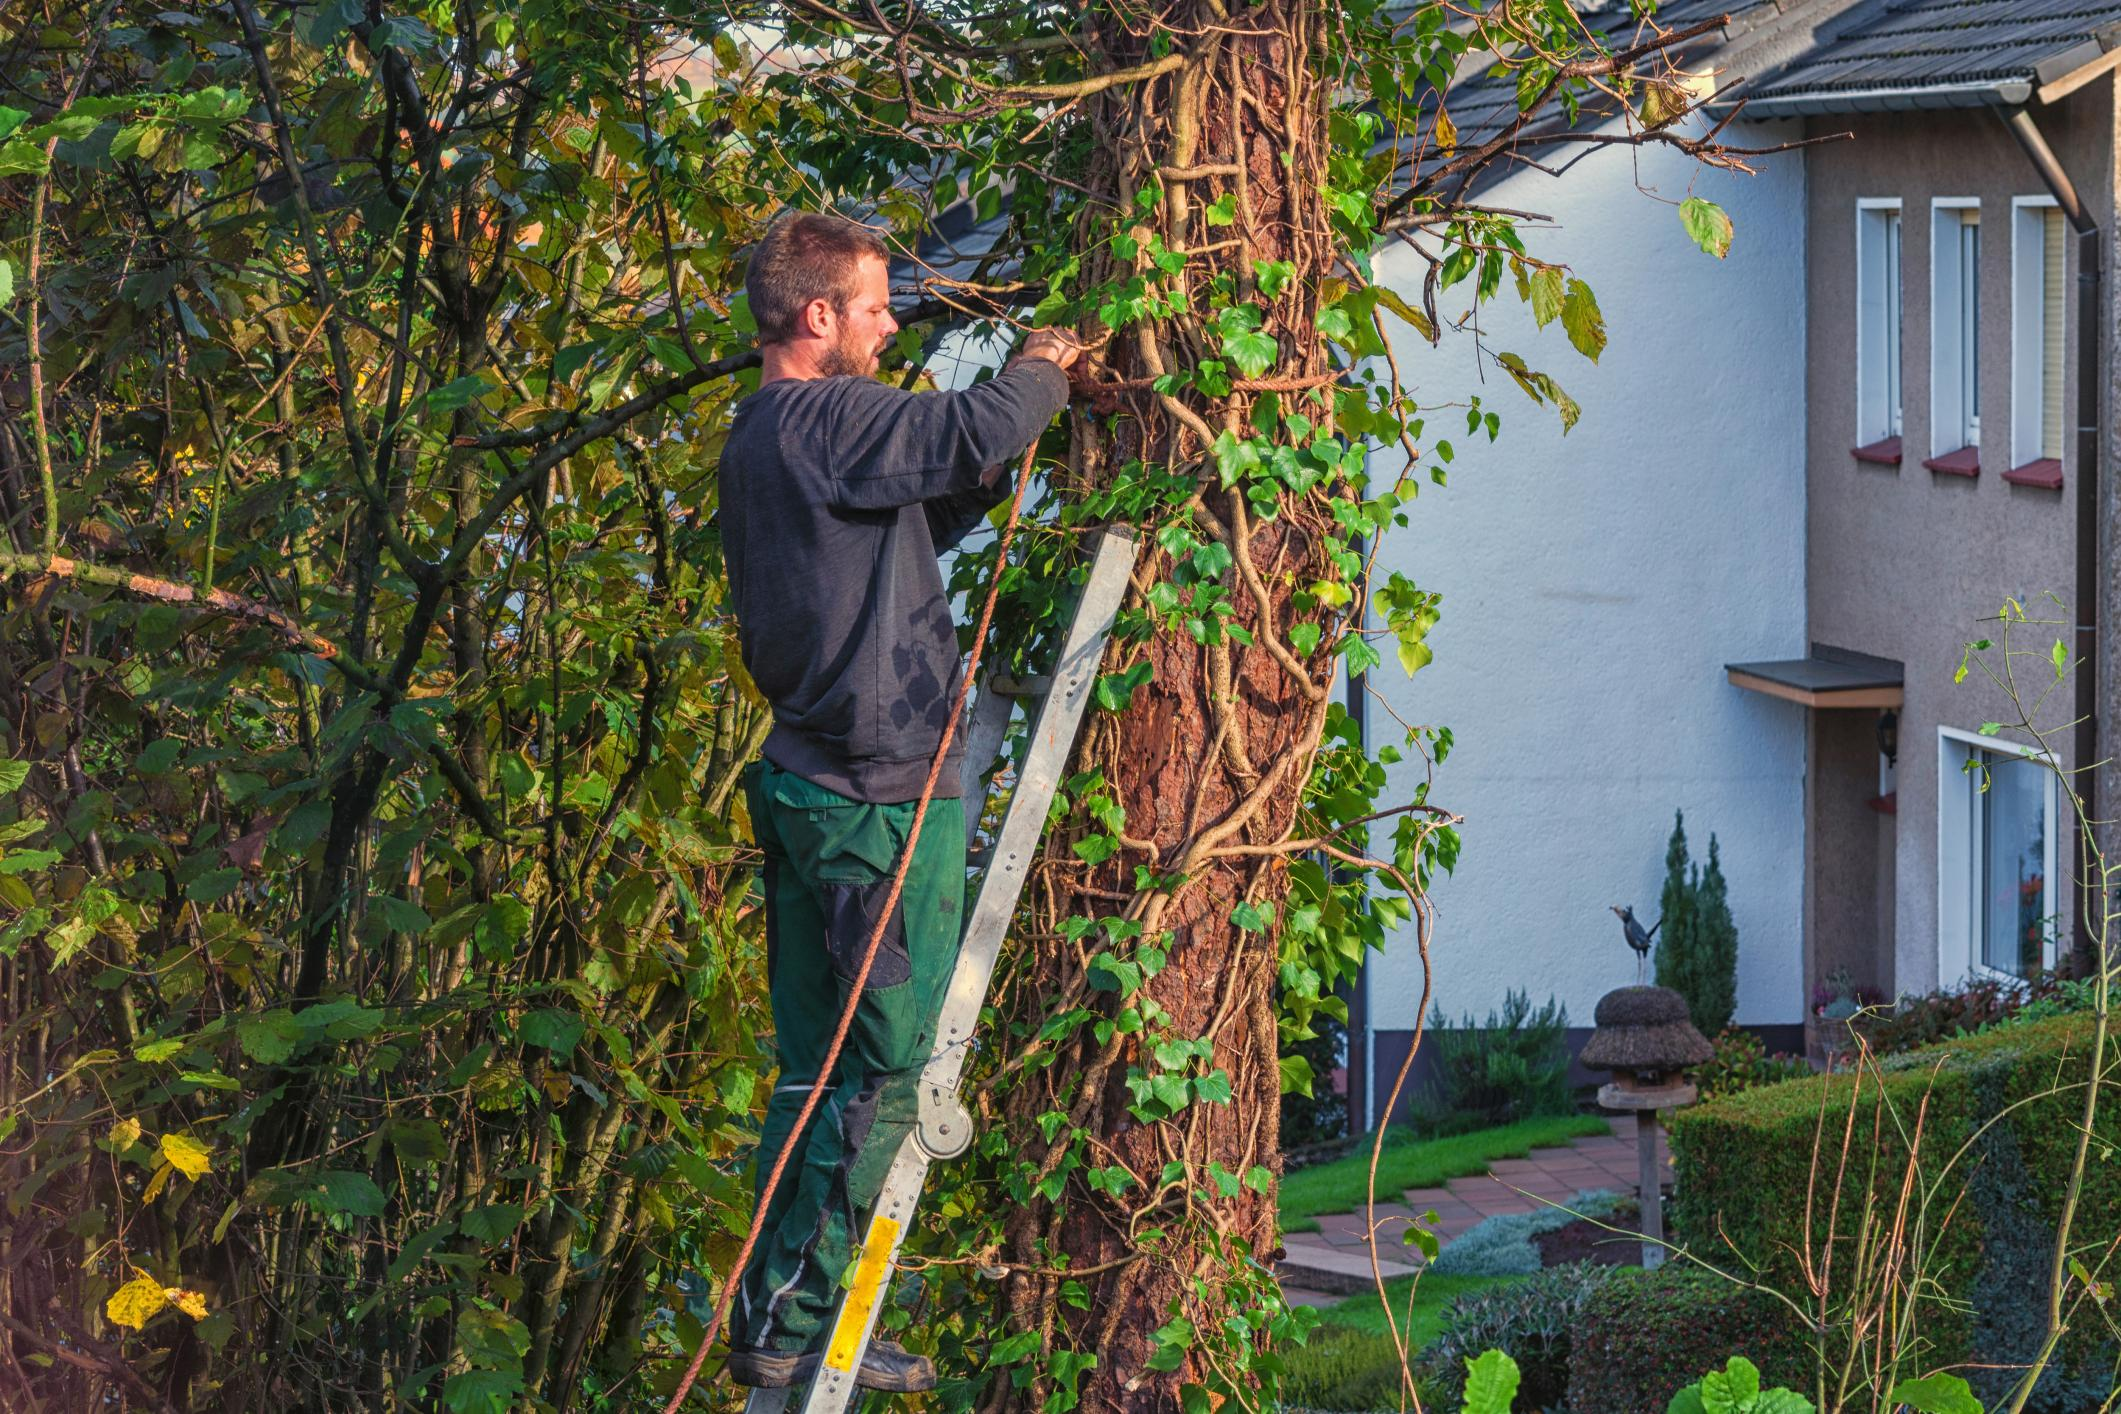 Tree Service Ashburn VA - Services